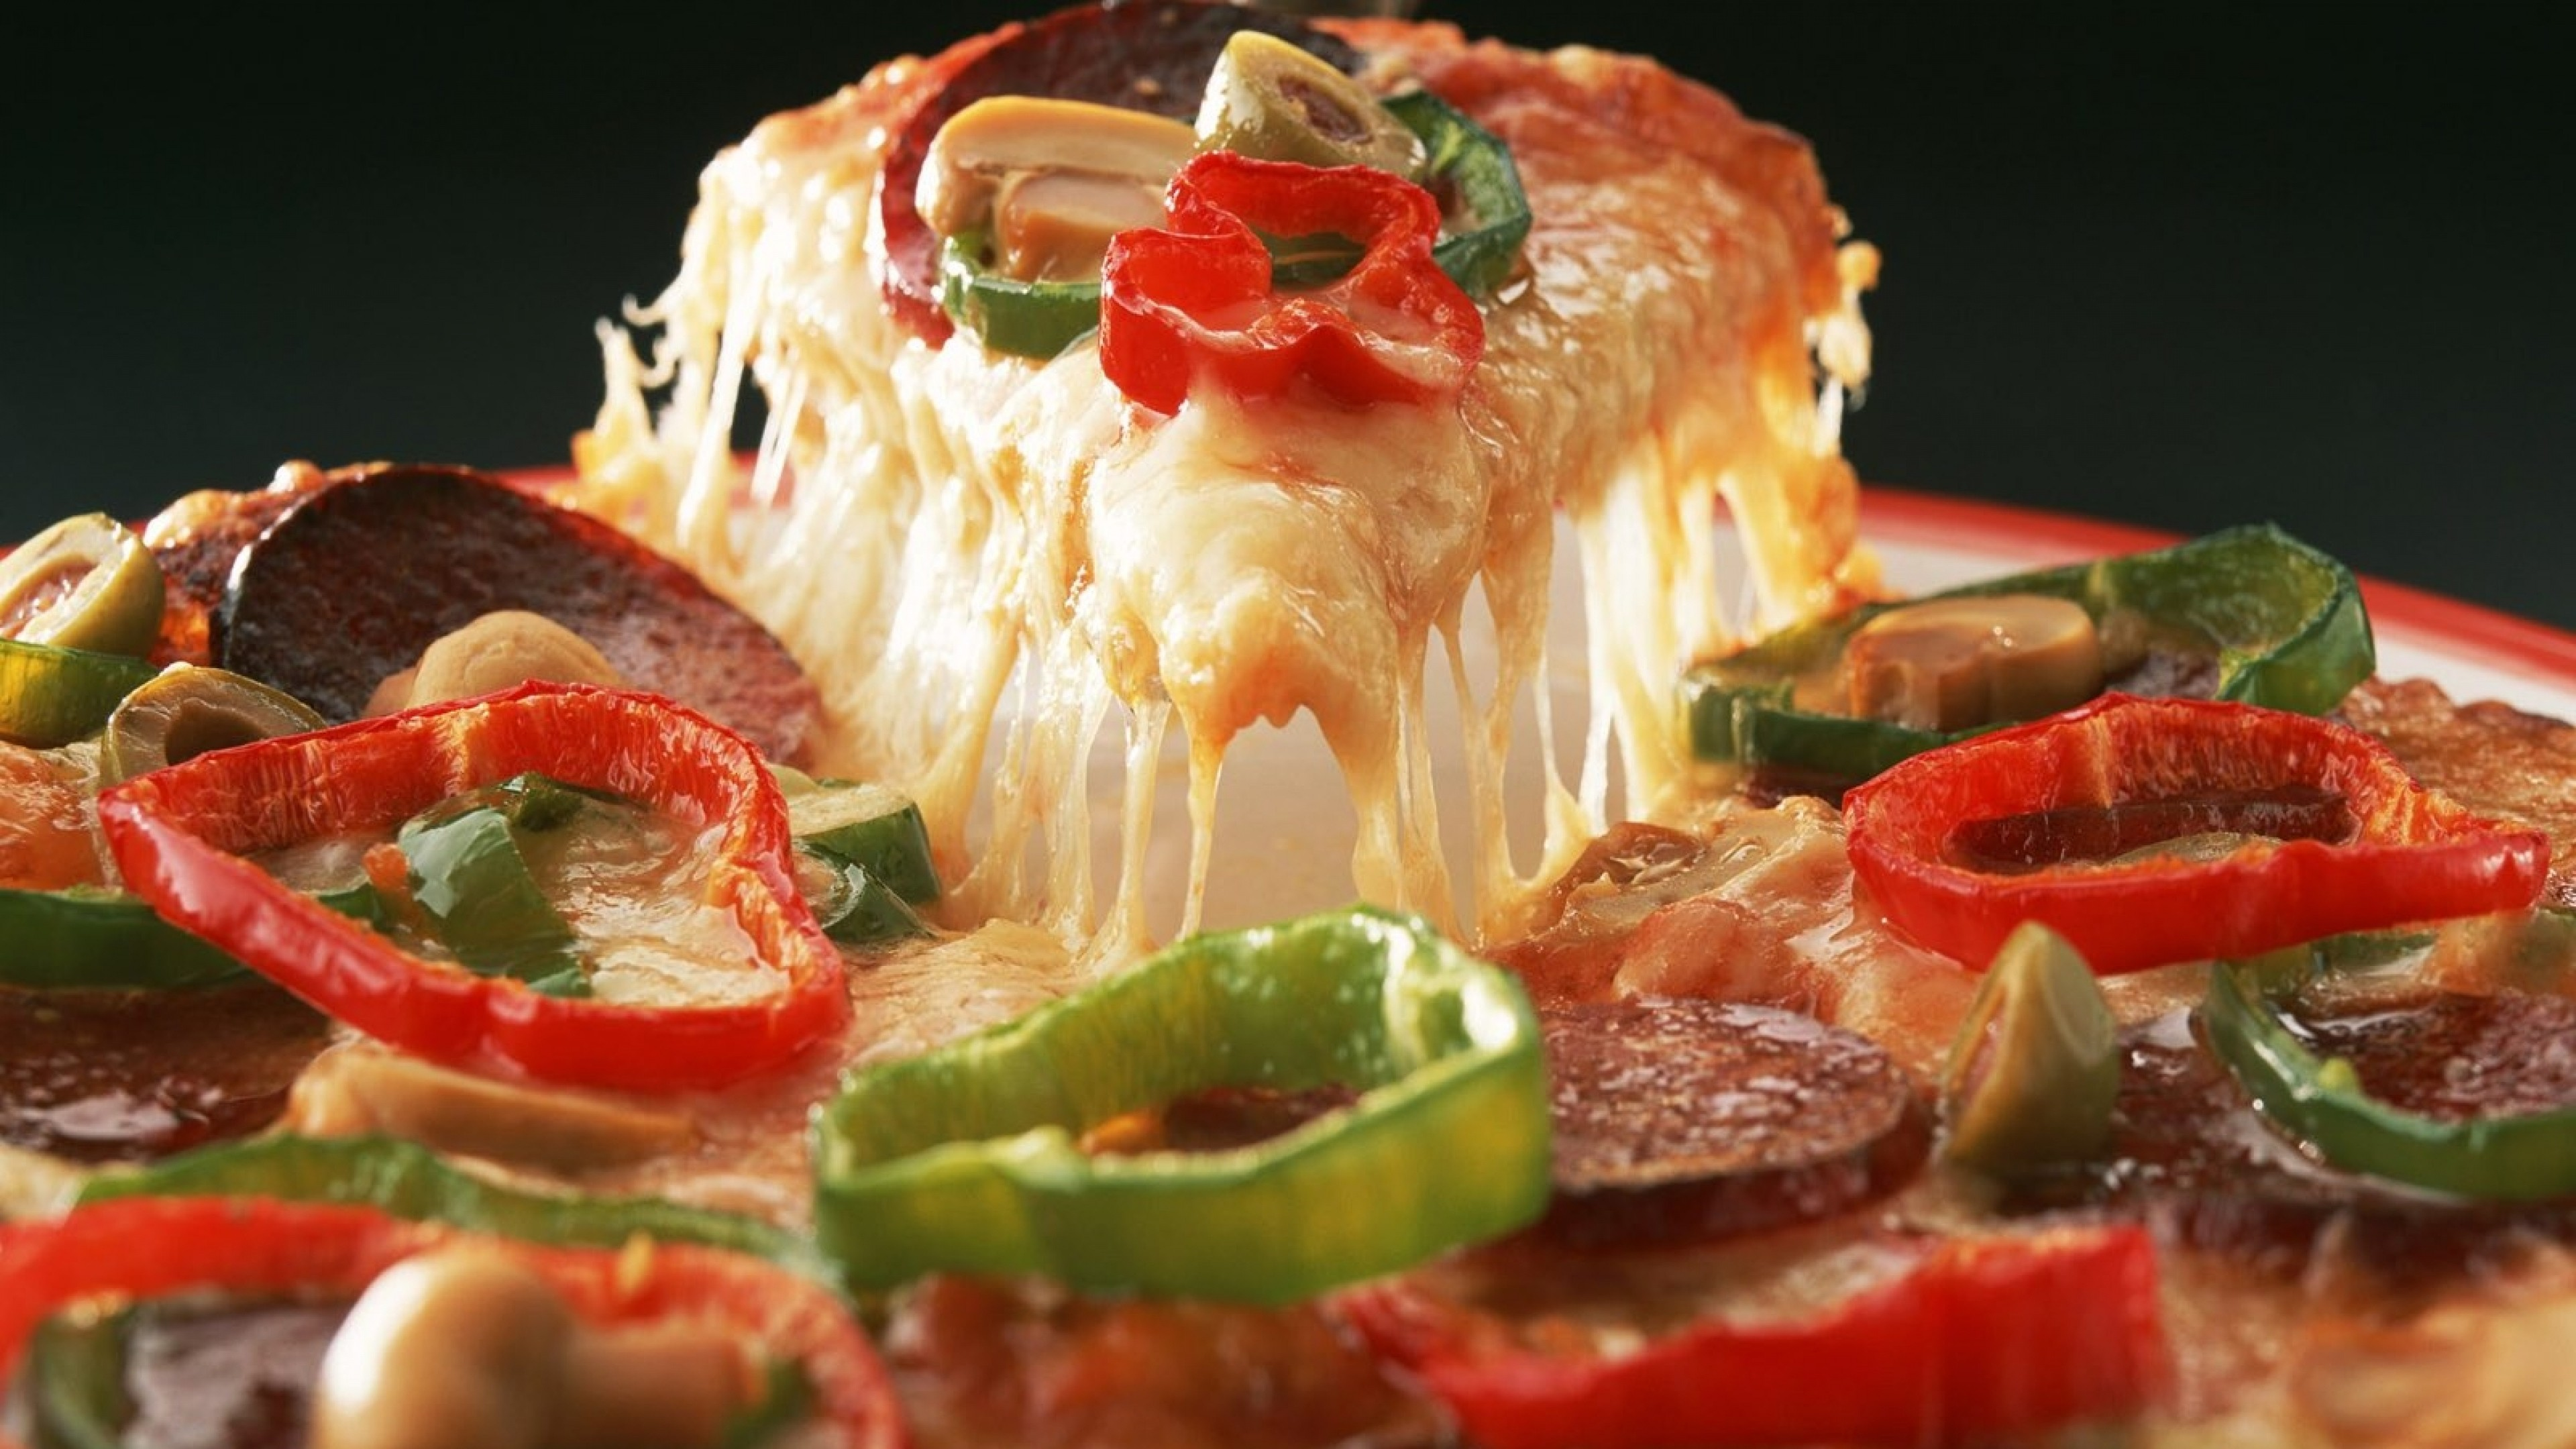 Free 3d Widescreen Wallpapers For Pc Pizza Background 183 ① Download Free Stunning High Resolution